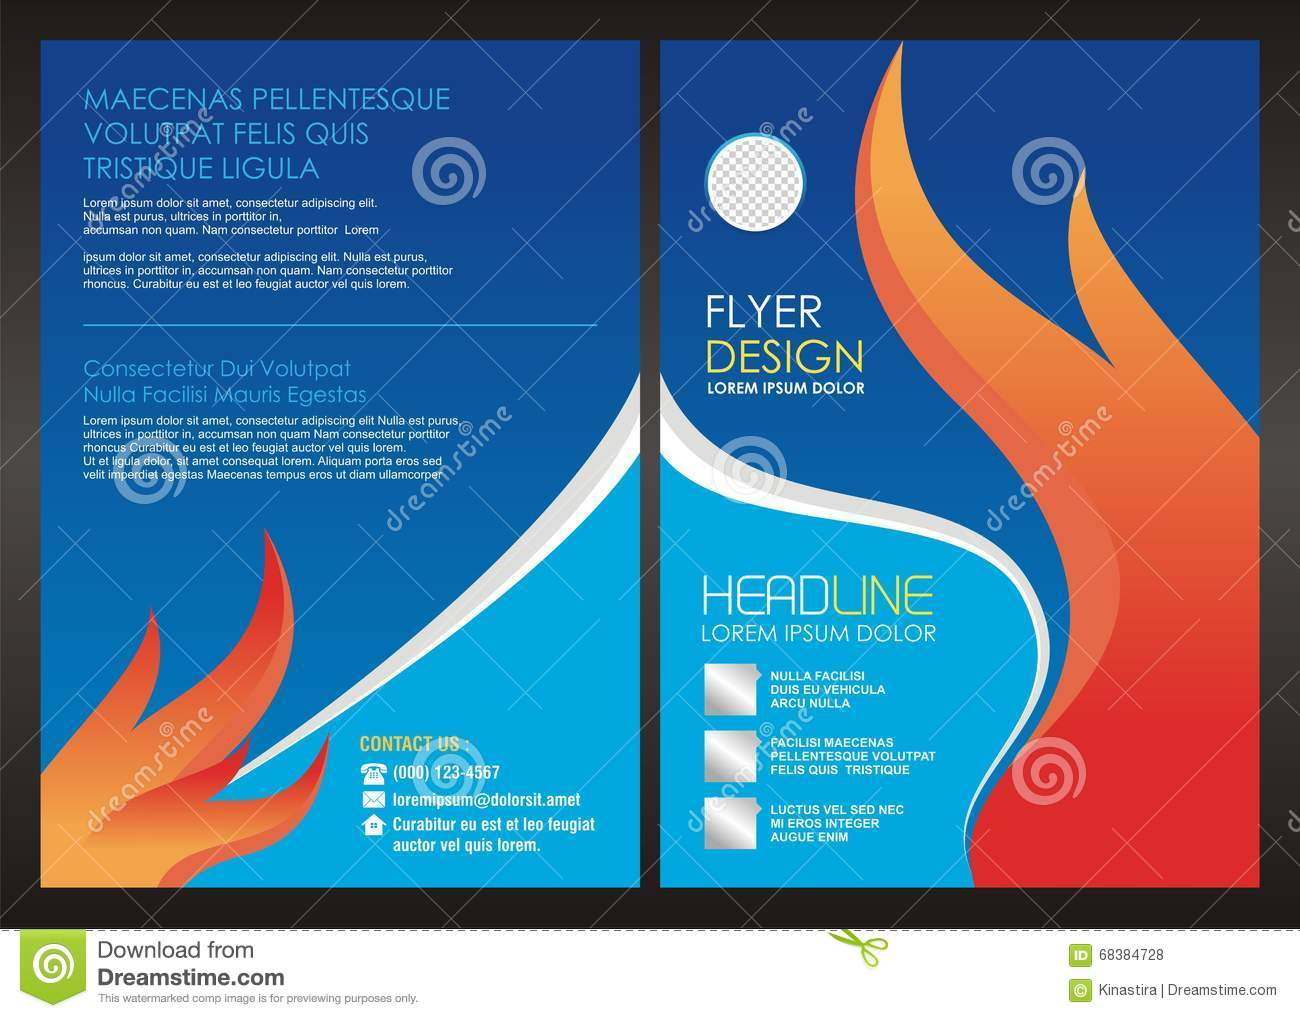 royalty free stock photos fire oil gas flyer cover template design image 68384728. Black Bedroom Furniture Sets. Home Design Ideas